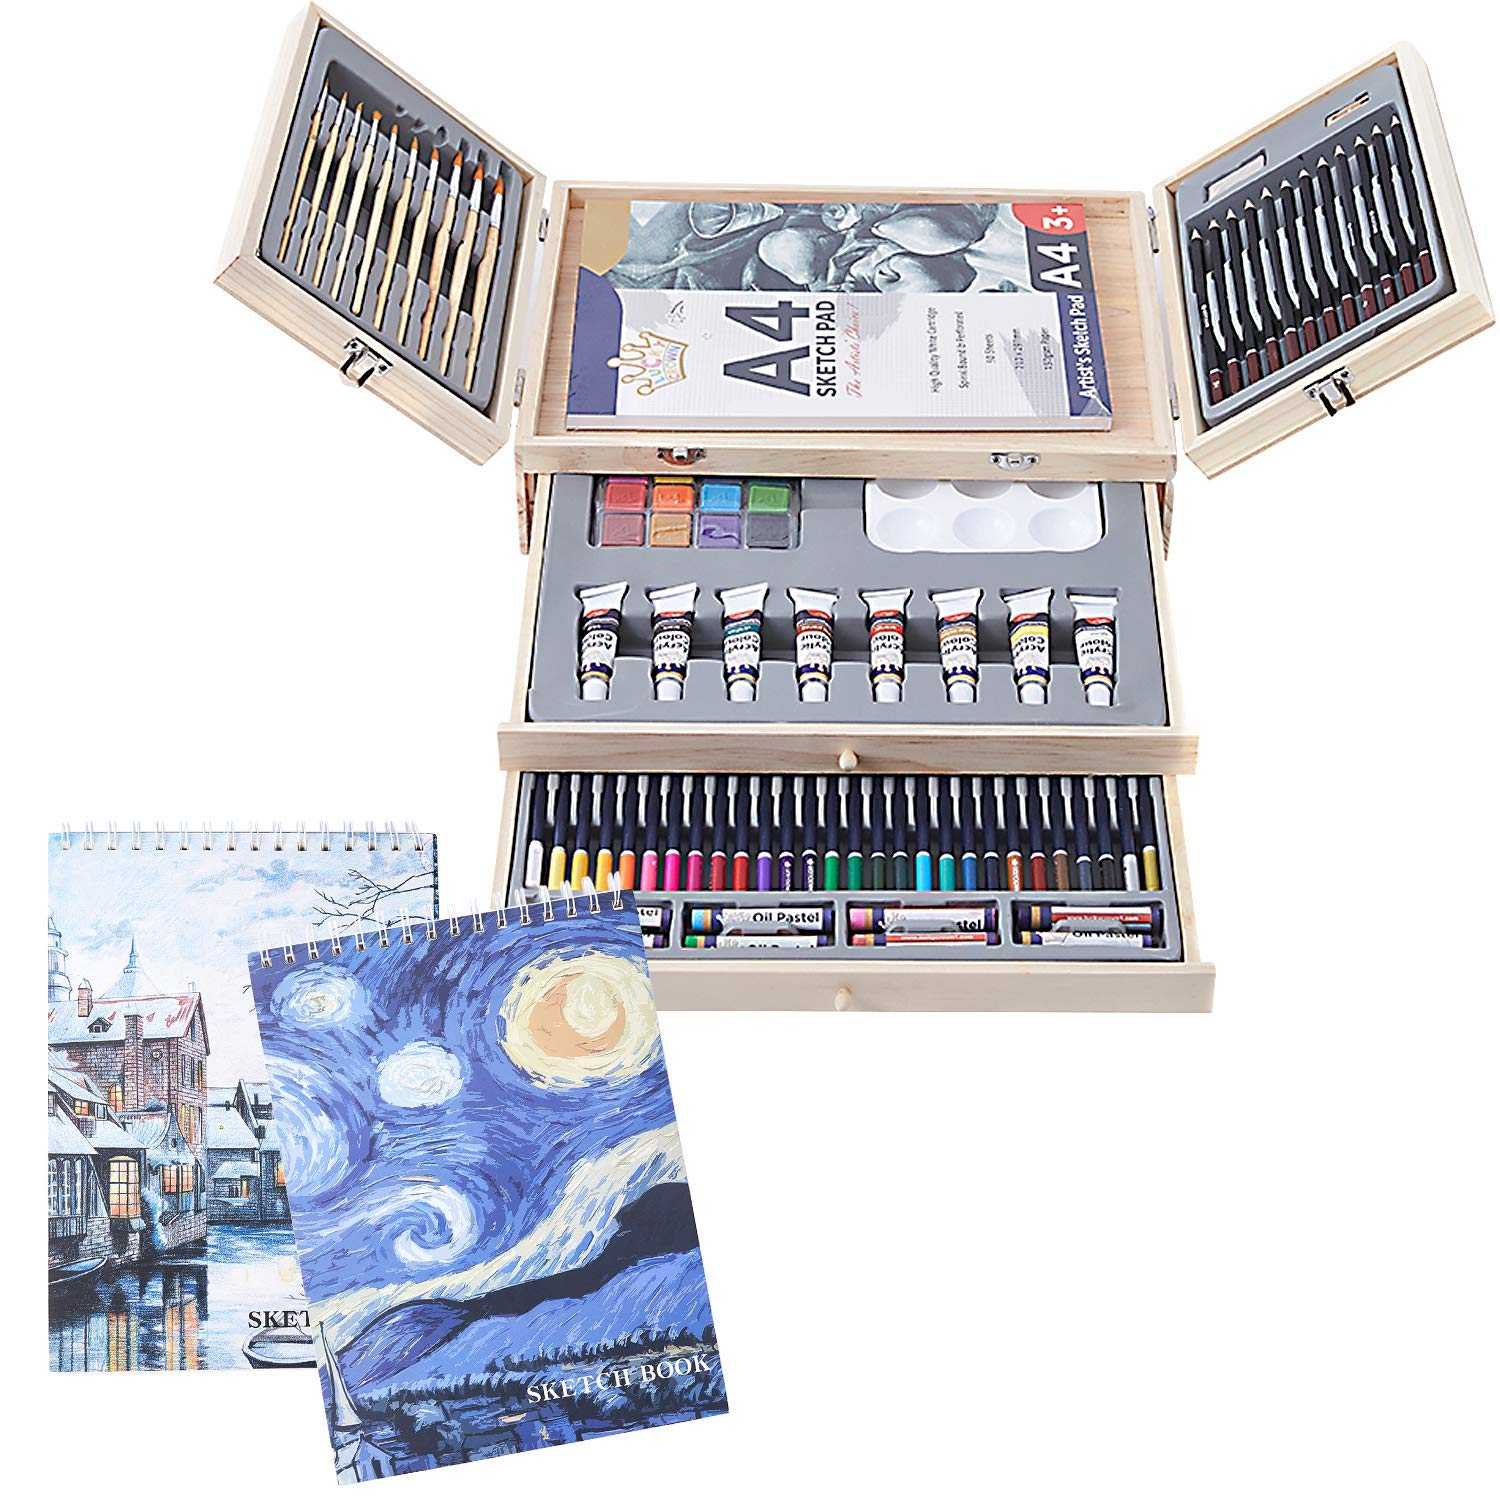 Professional Art Set 85 Piece Deluxe Art Set in Portable Wooden Case-Painting & Drawing Set Professional Art Kit with 3 x 50 Page Drawing Pad for Kids, Teens and Adults/Gift by COOL BANK